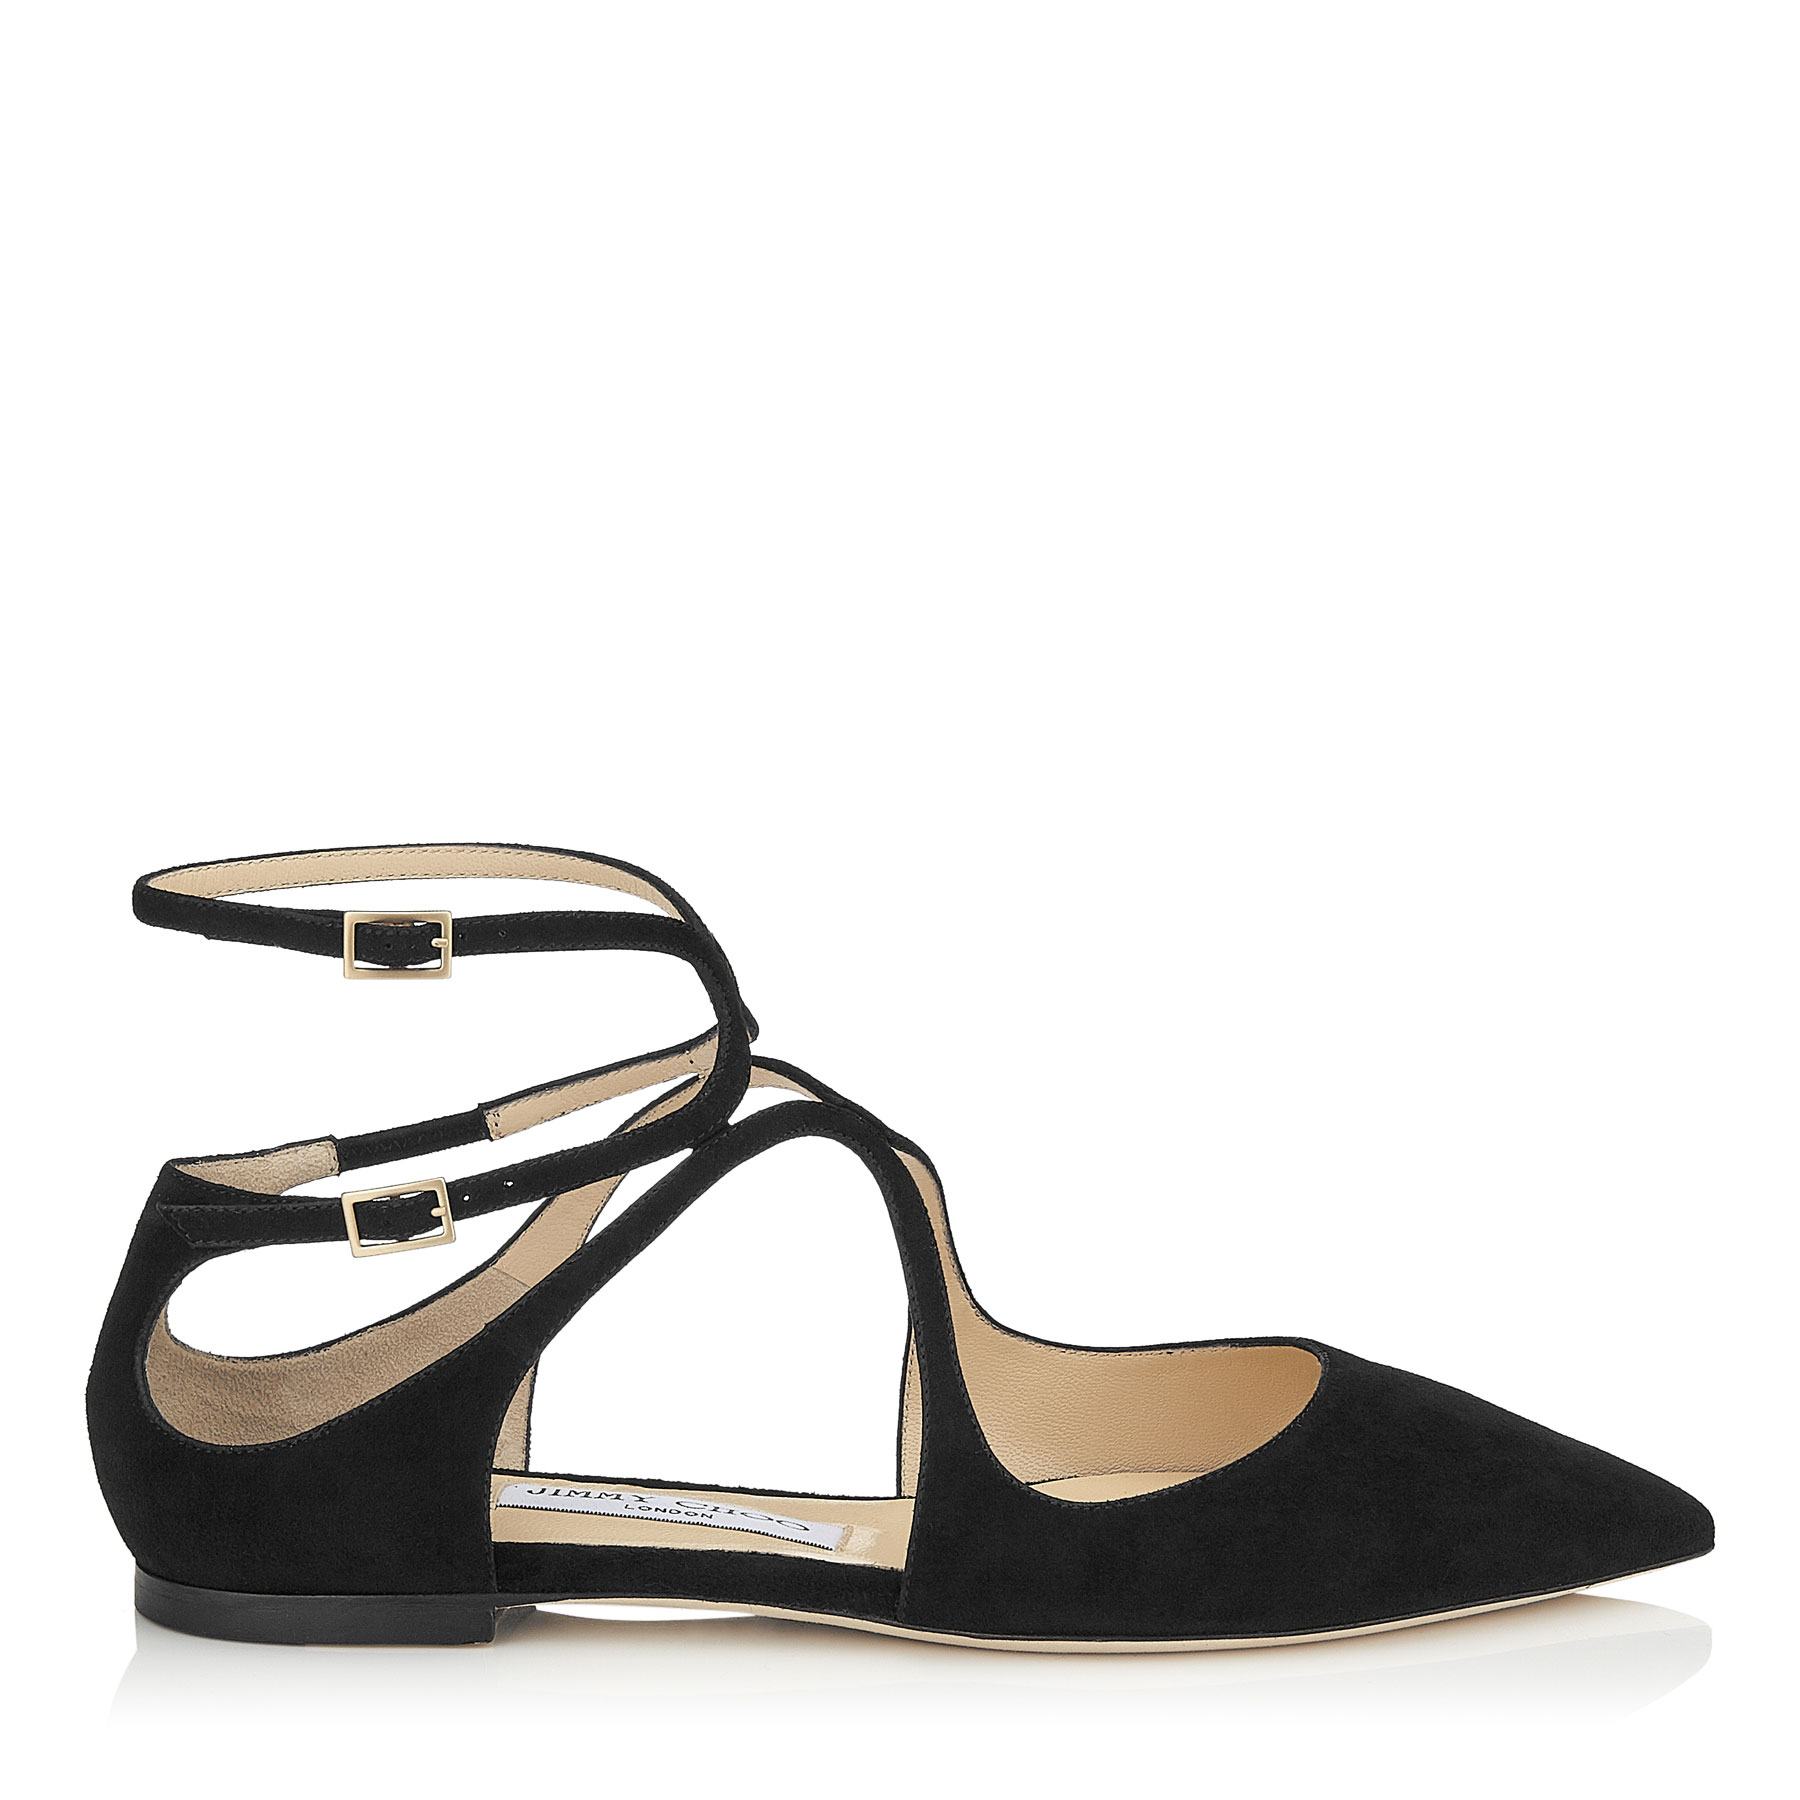 LANCER FLAT Black Suede Pointy Toe Flats by Jimmy Choo